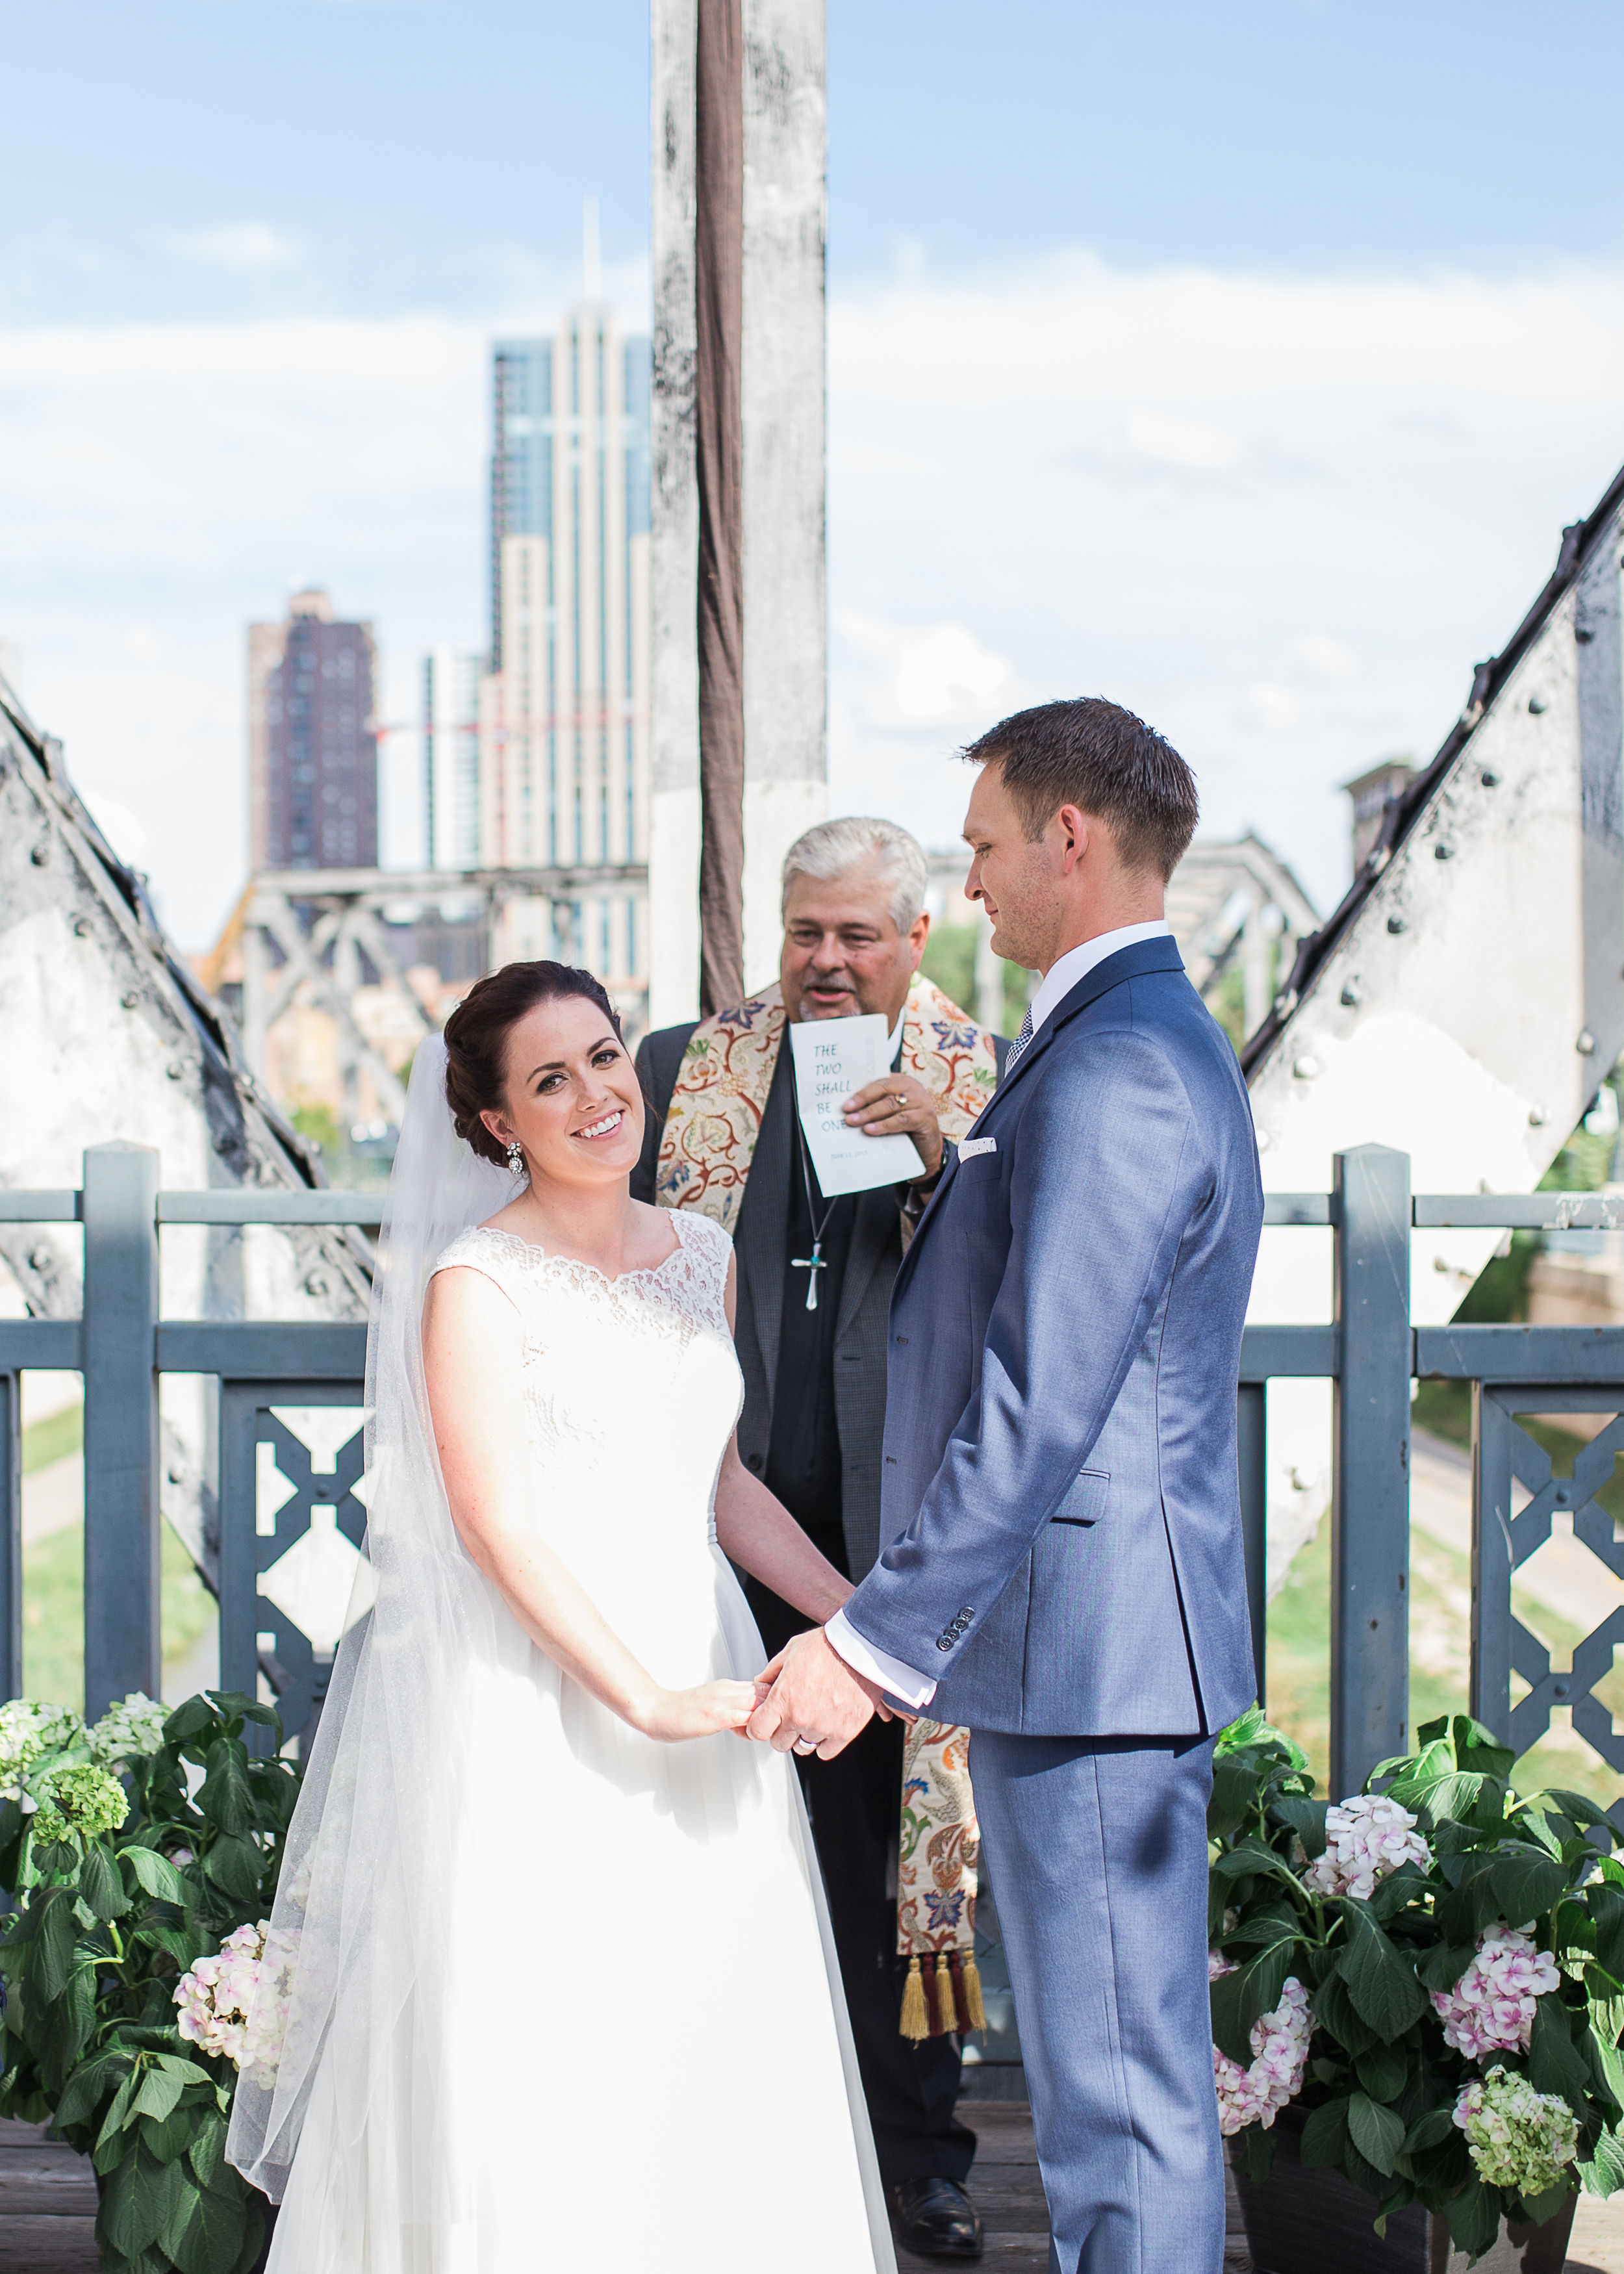 Coohills Wedding Photographer - bride and groom during ceremony on bridge